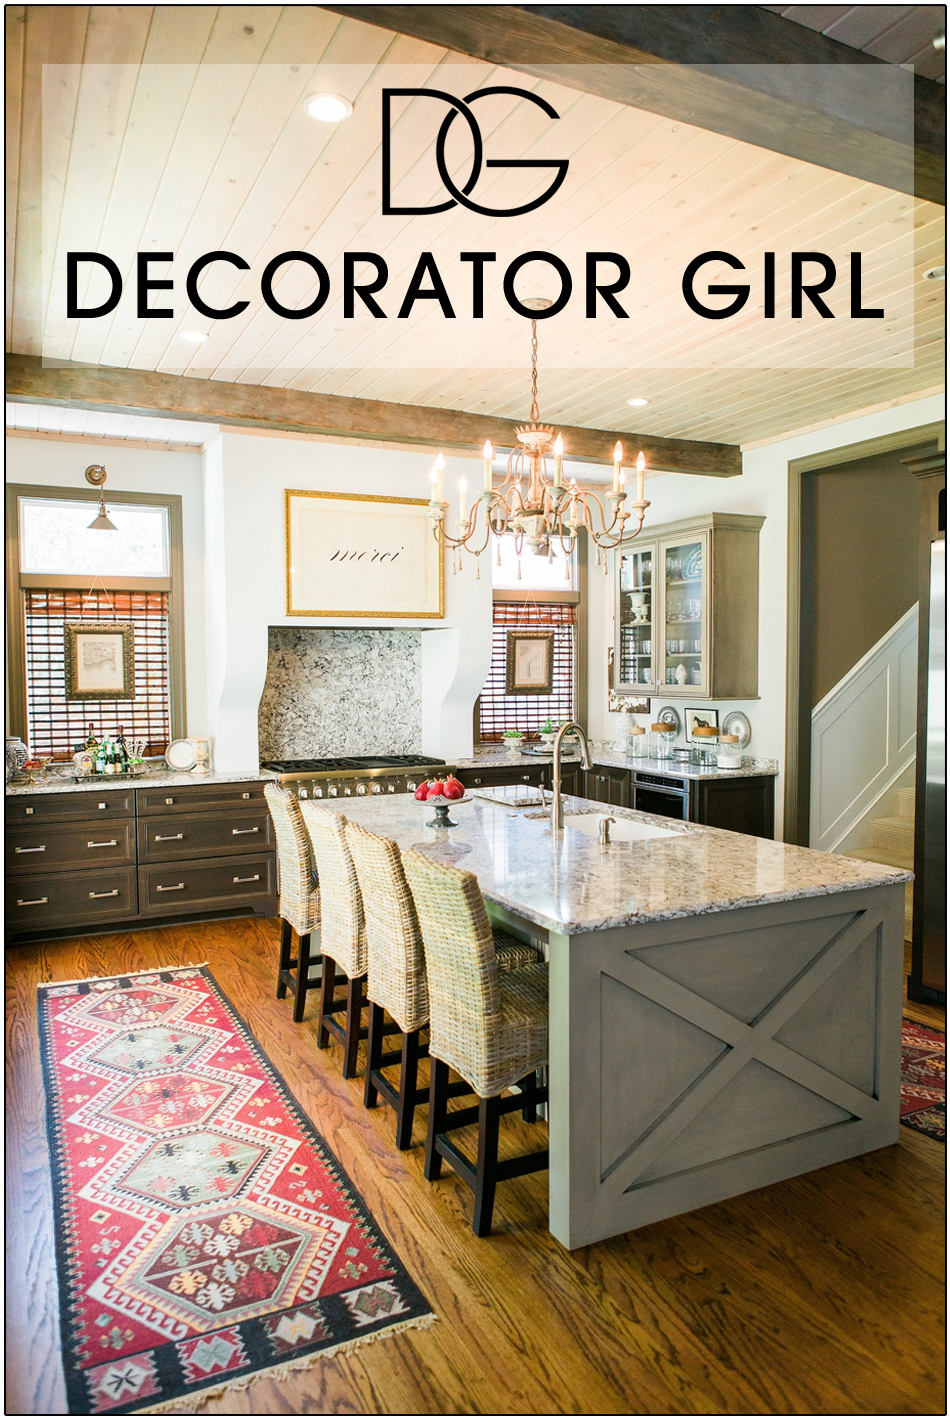 Decorator Girl Is An Interior Decorator Located In The Northern